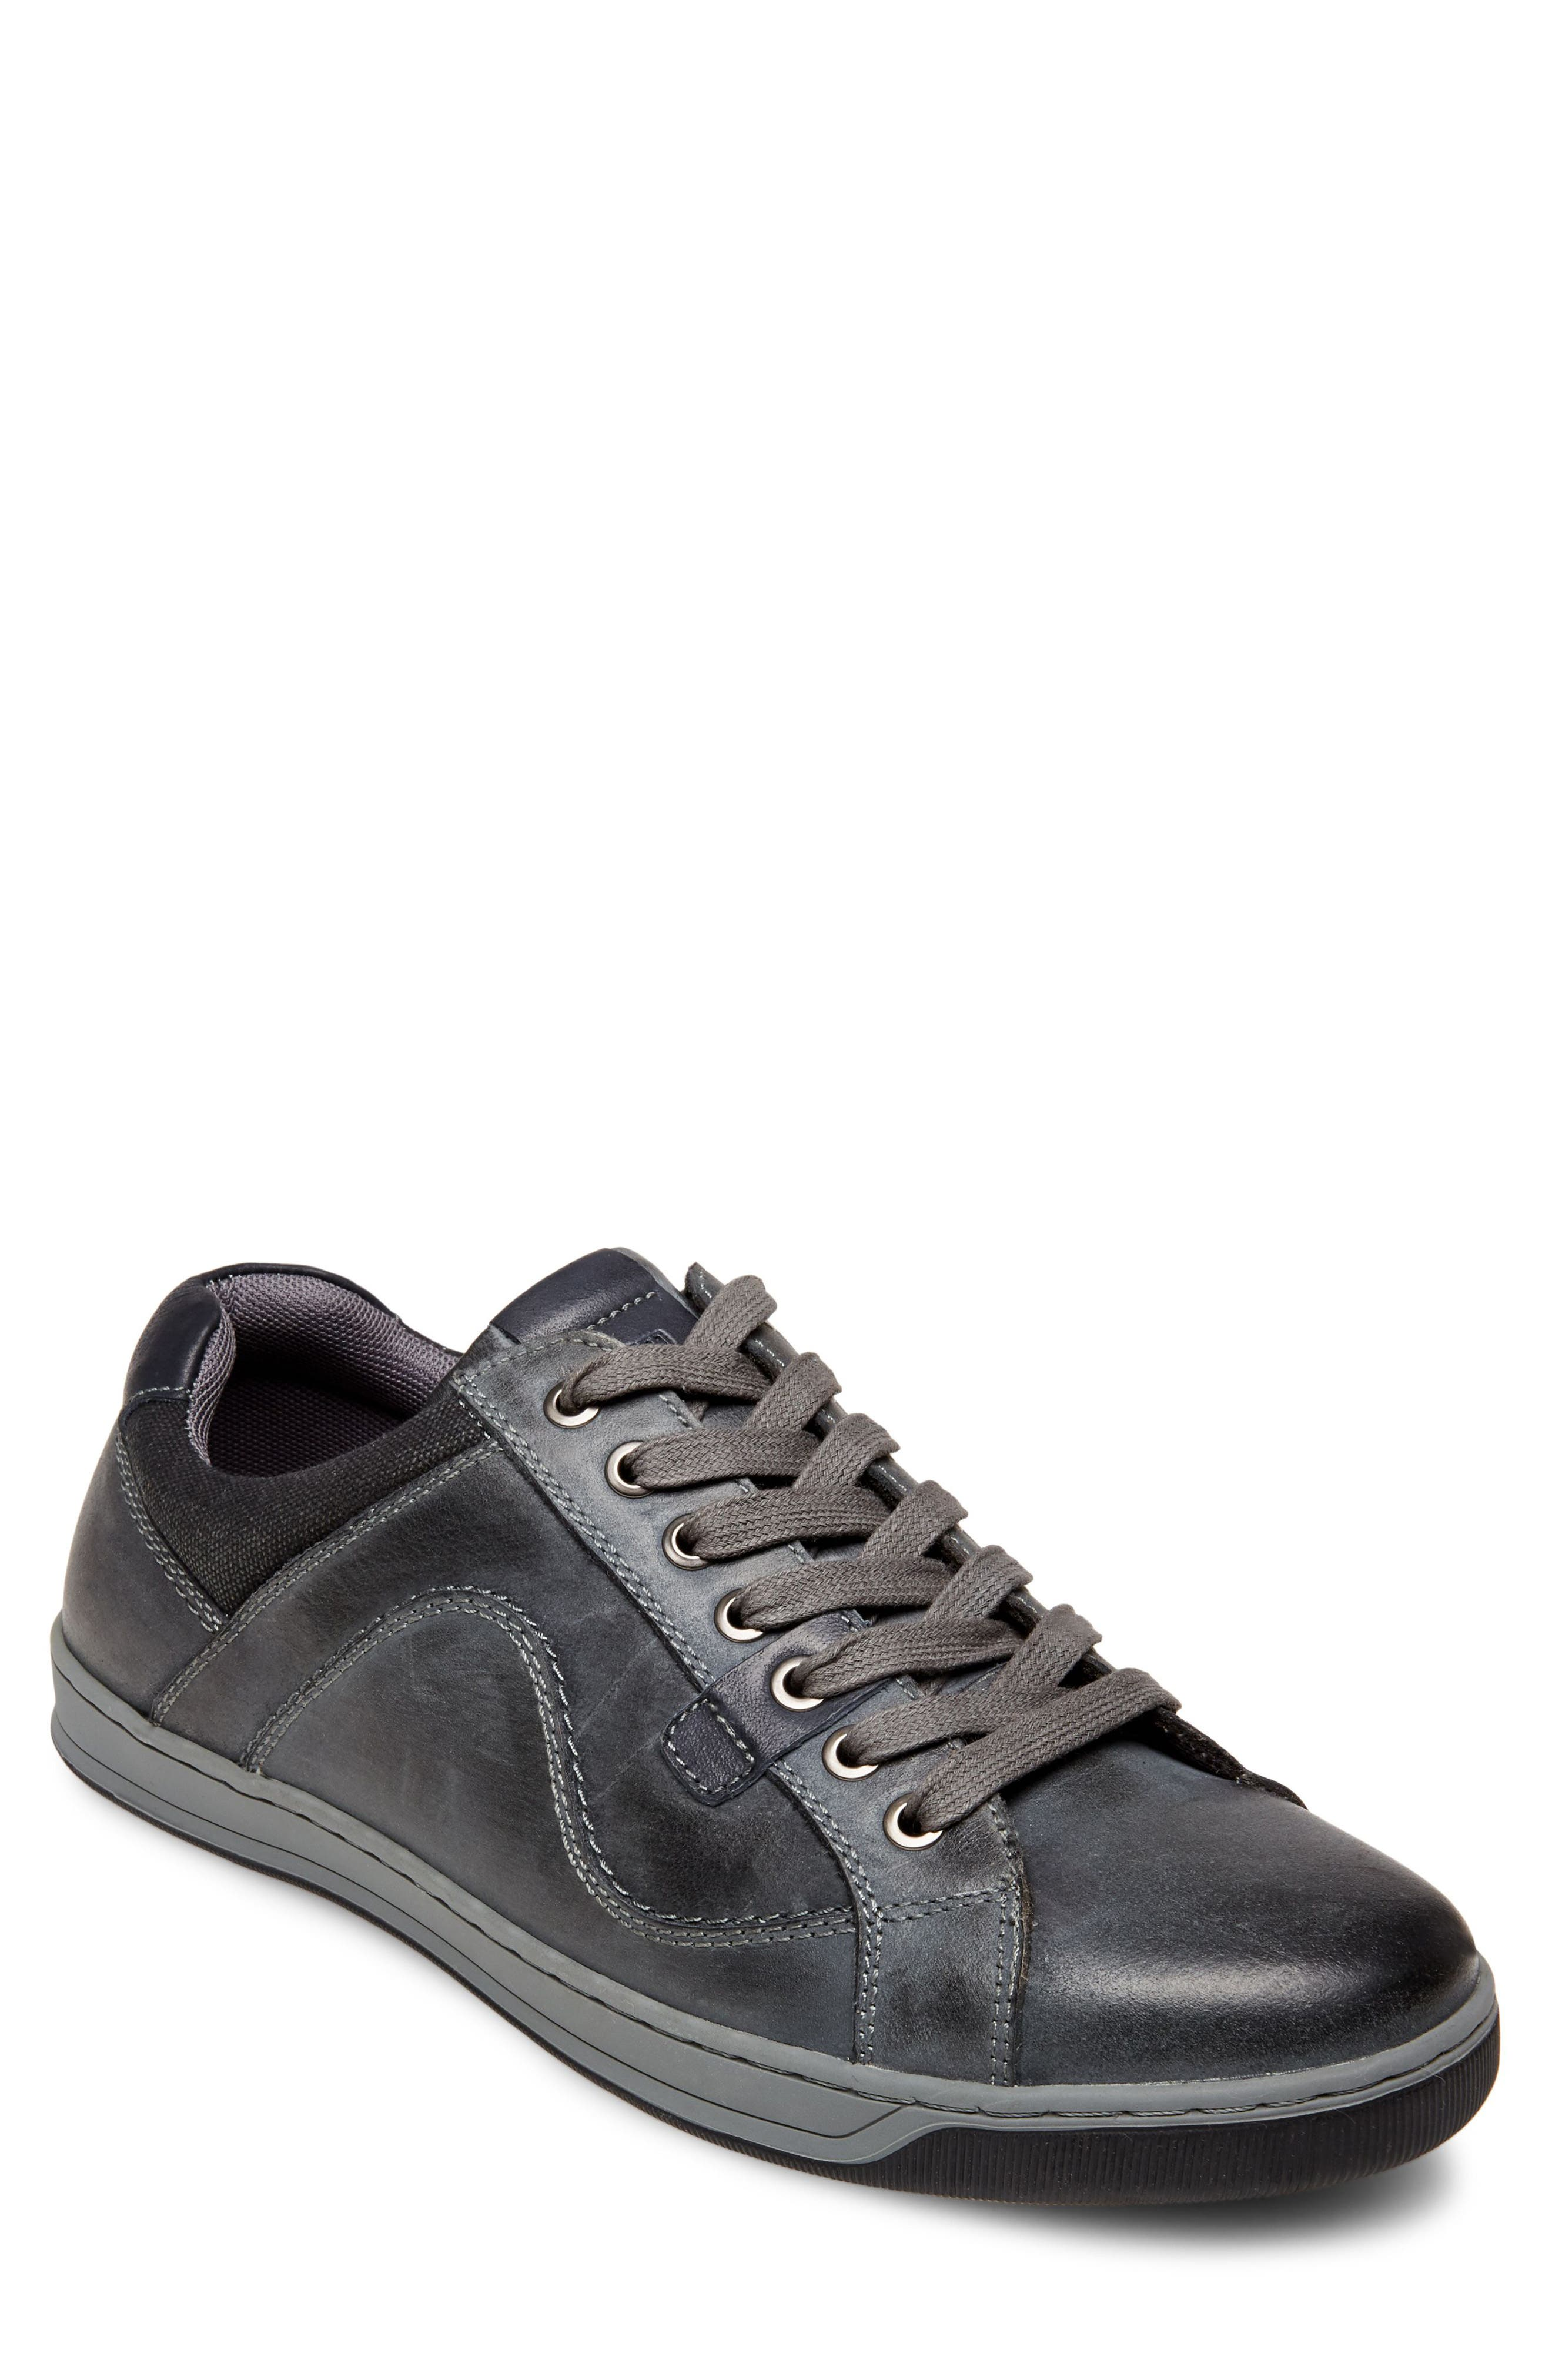 Chater Low Top Sneaker,                         Main,                         color,